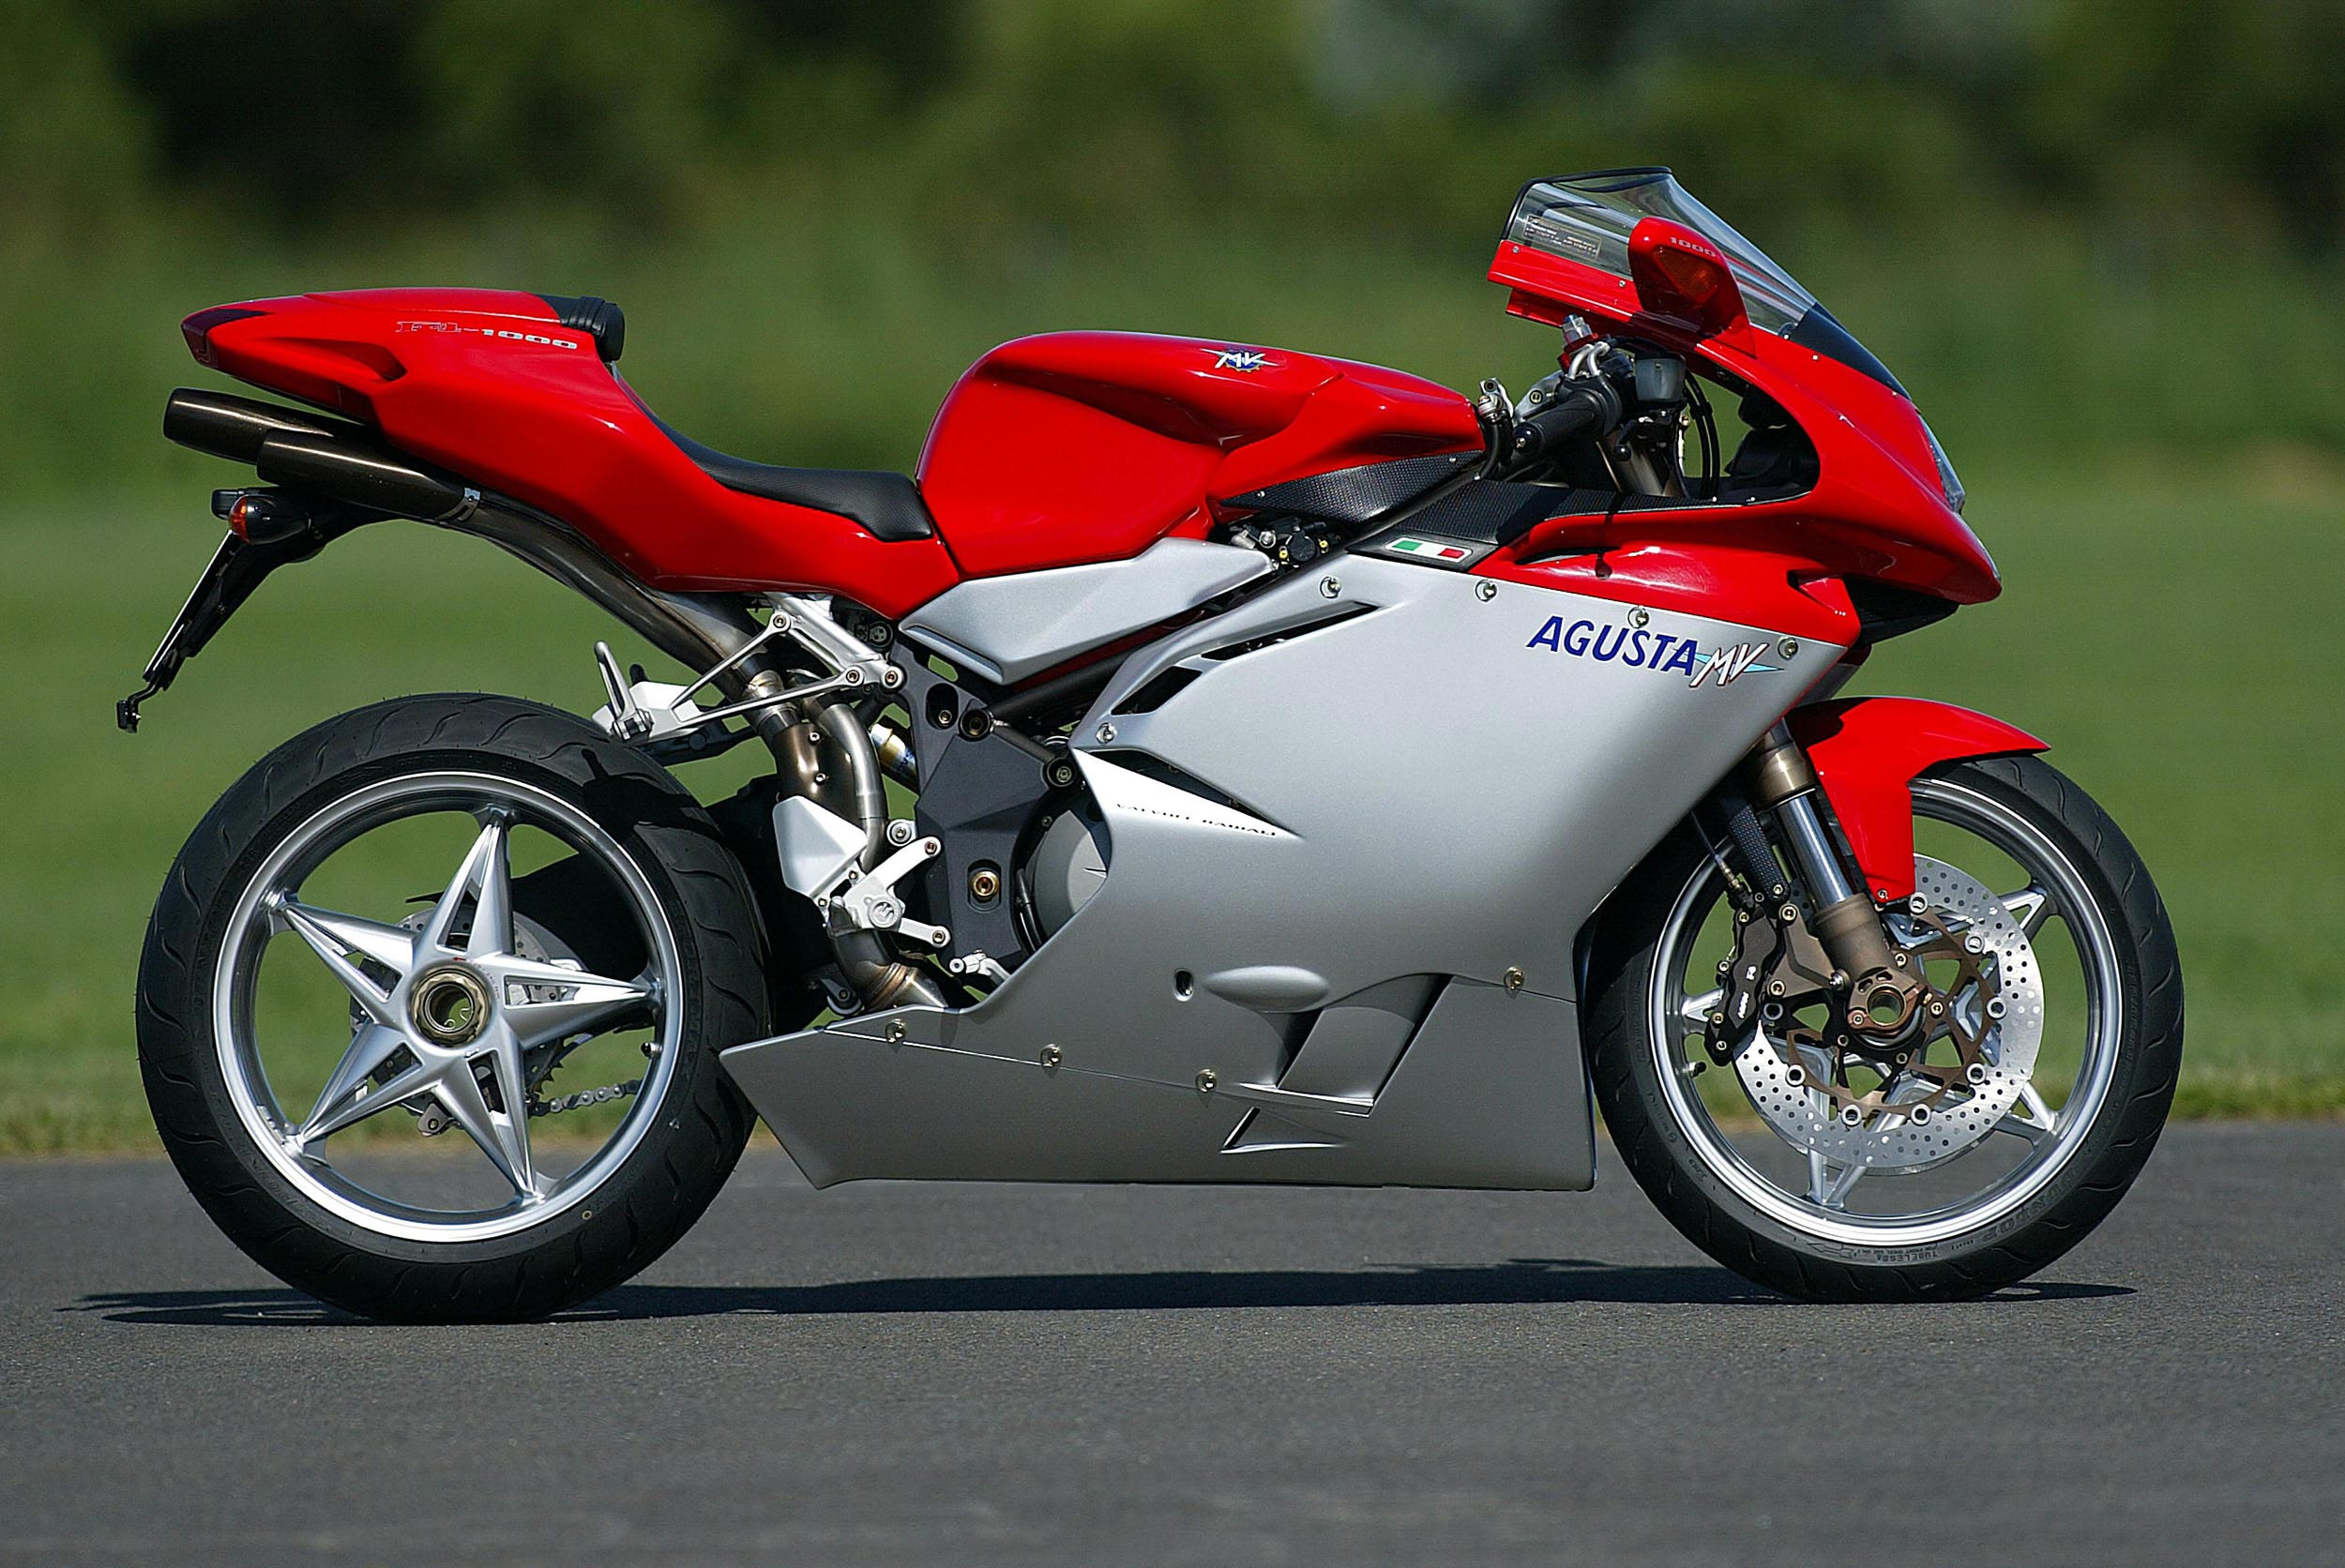 2006 mv agusta f4 1000s review top speed. Black Bedroom Furniture Sets. Home Design Ideas